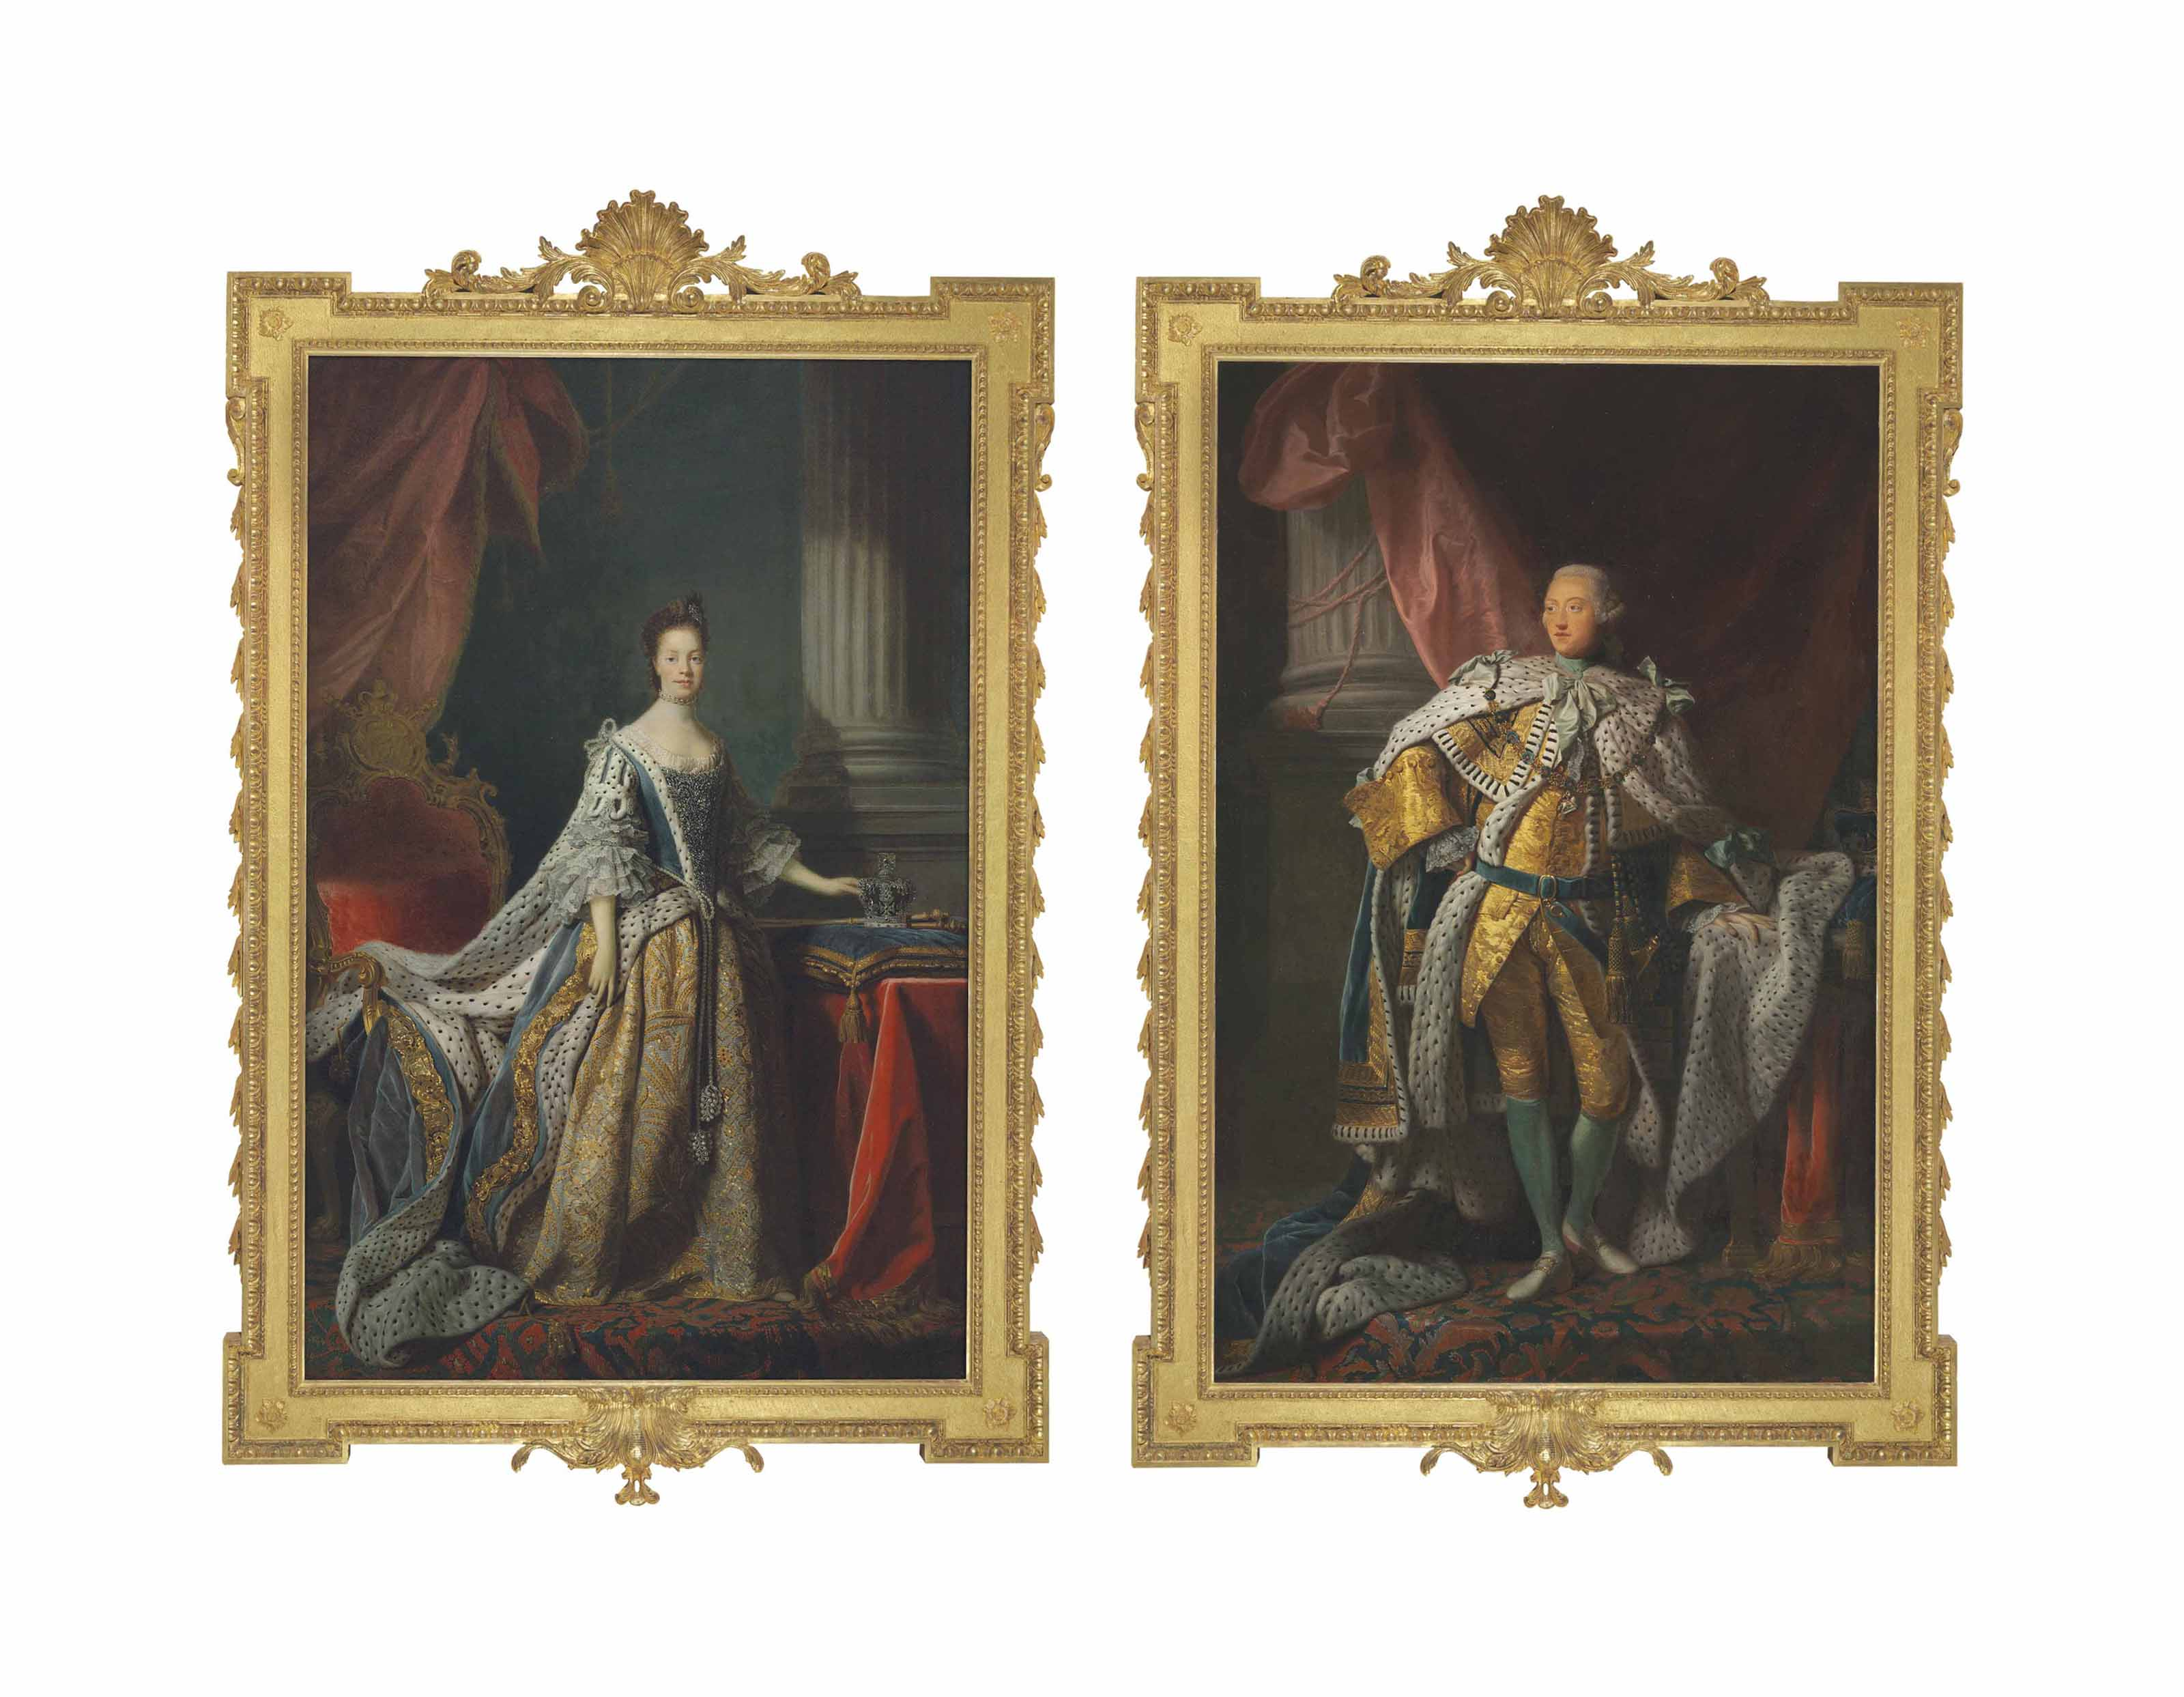 Portrait of King George III (1738-1820), full-length, in robes of state, his crown on a cushion on a table beside him; and Portrait of Queen Charlotte (1744-1818), full-length, in robes of state, in front of a richly carved and gilded chair decorated with the crown, sceptres, cipher and royal supporters, her left hand resting on her crown